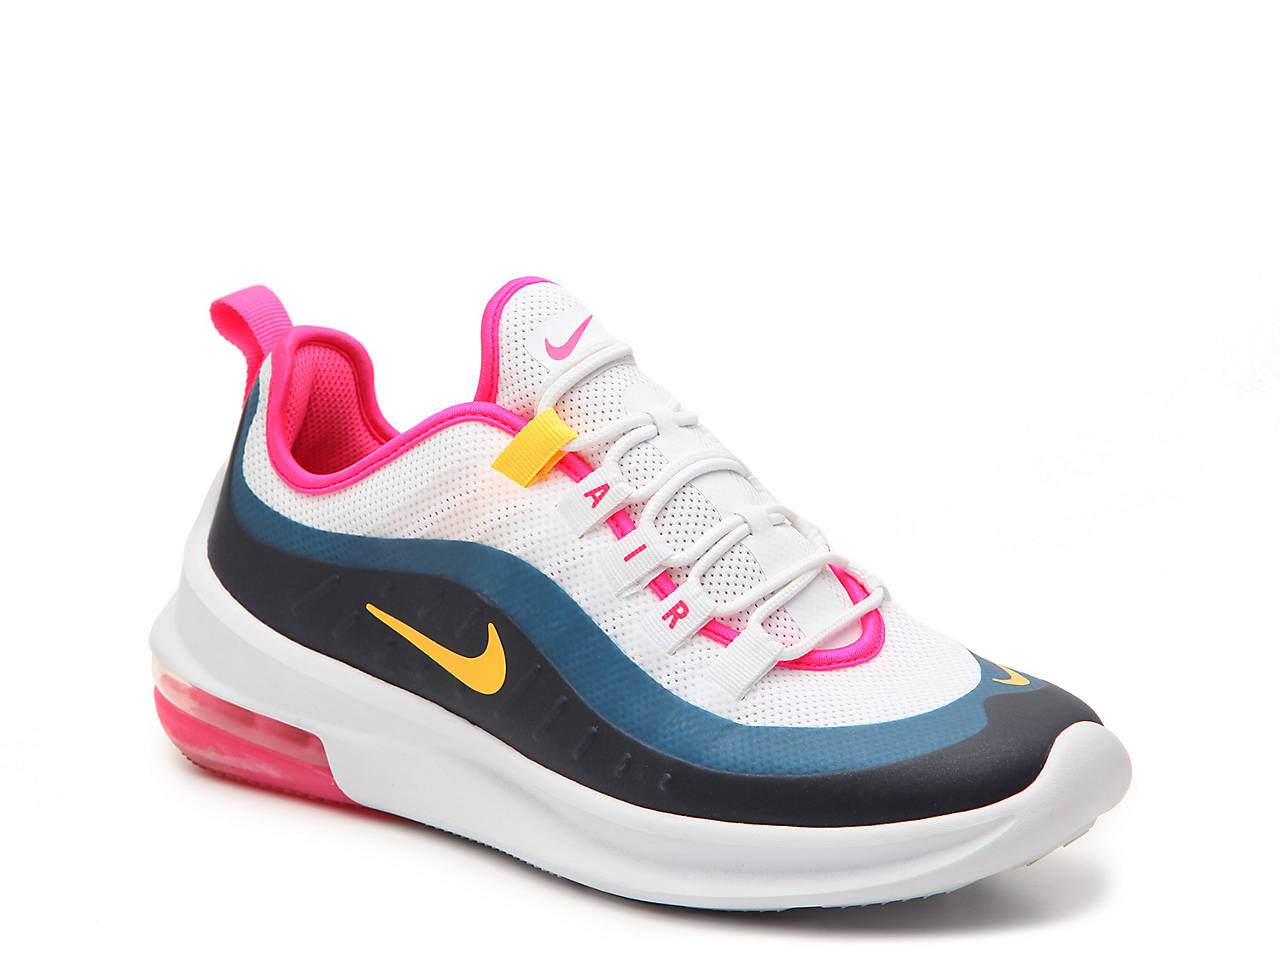 6465e0117f8d22 Nike Air Max Axis Sneaker - Women s Women s Shoes